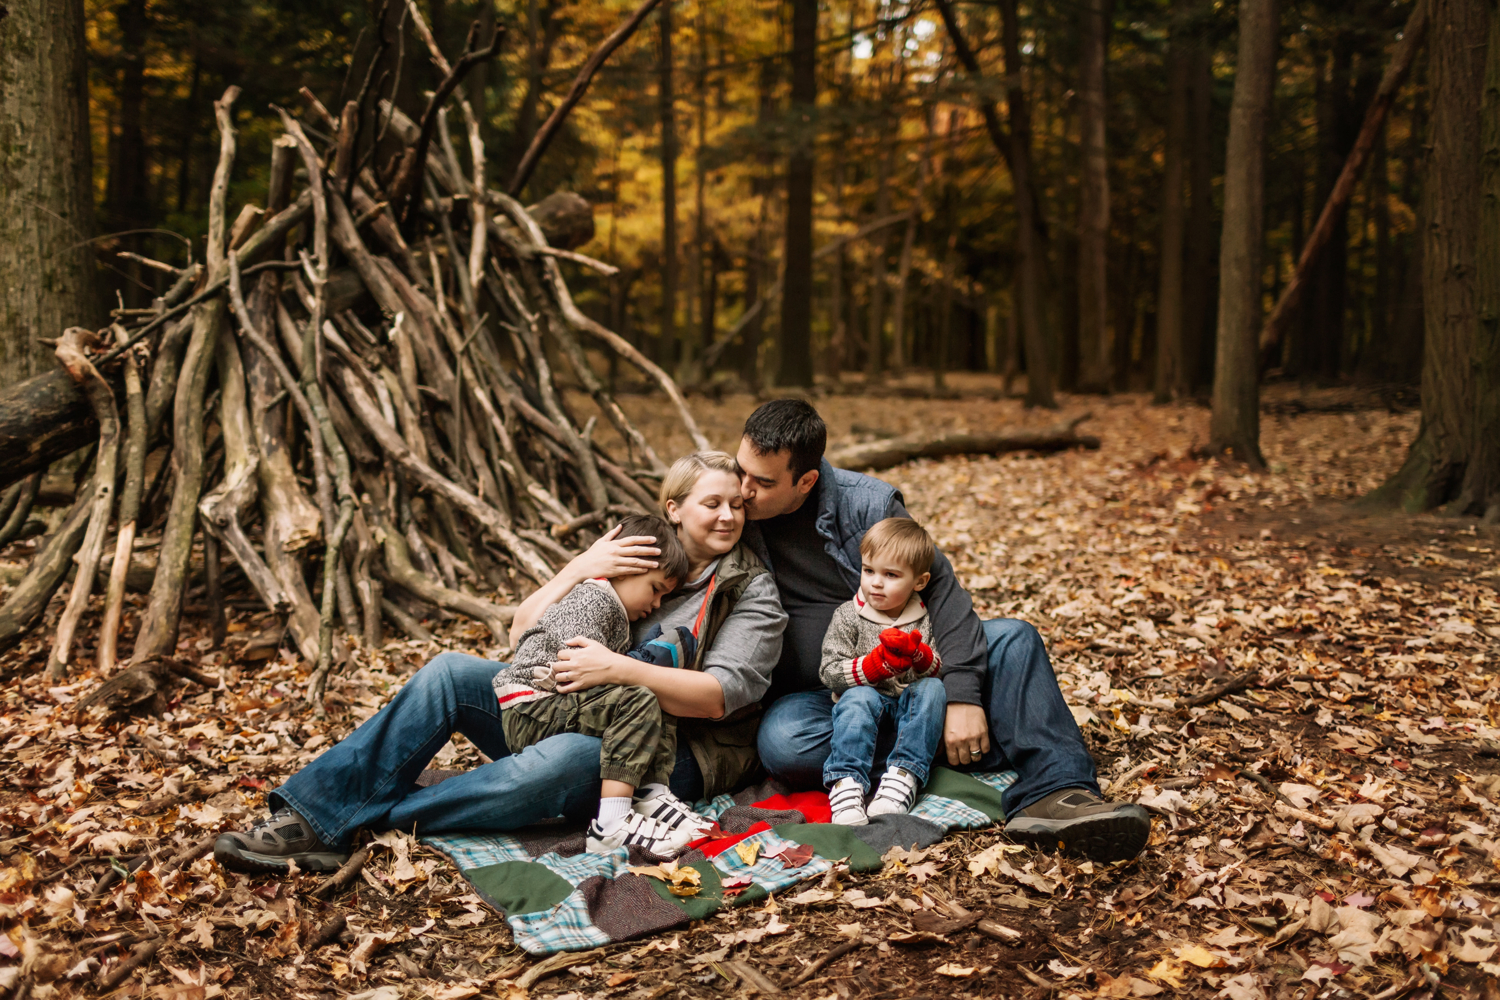 Our little family - captured at our favourite hiking spot in Rouge National Urban Park on a family blanket that was quilted by my Finnish grandmother and great aunt over 60 years ago. Photo credit by crazy talented and dear friend Melissa Maahs Photography.